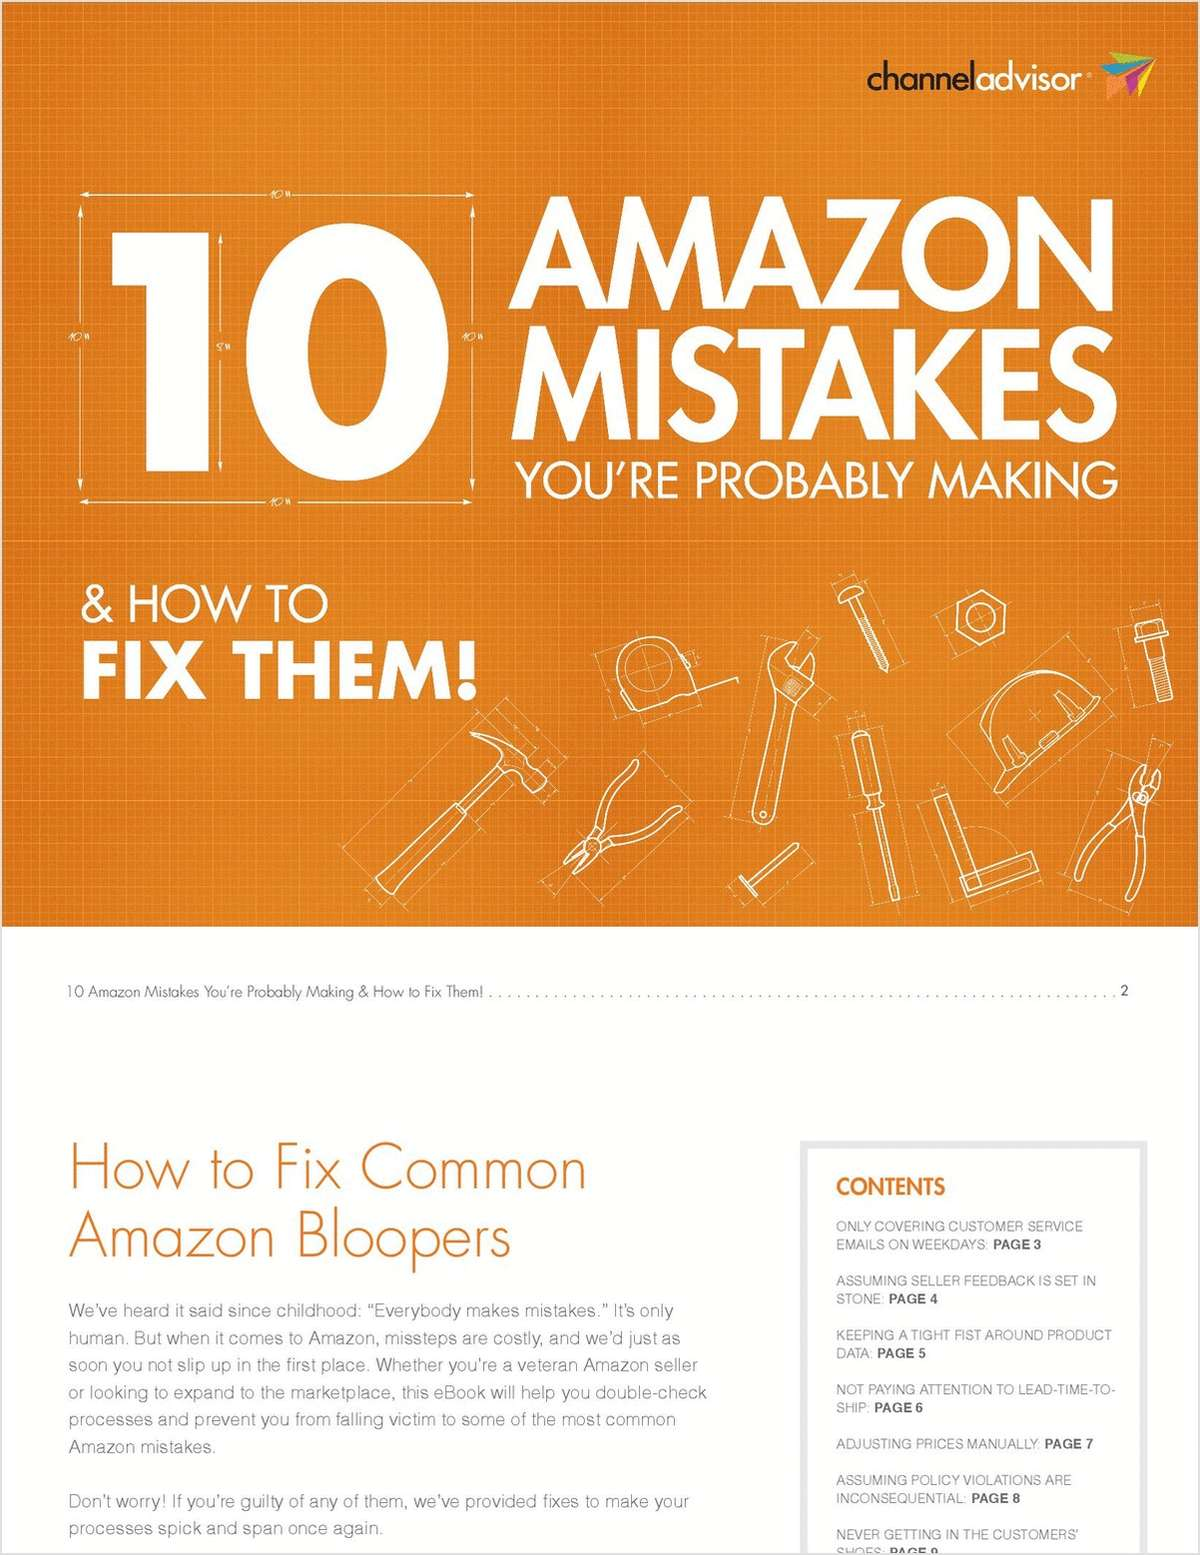 10 Amazon Mistakes You're Probably Making & How to Fix Them!